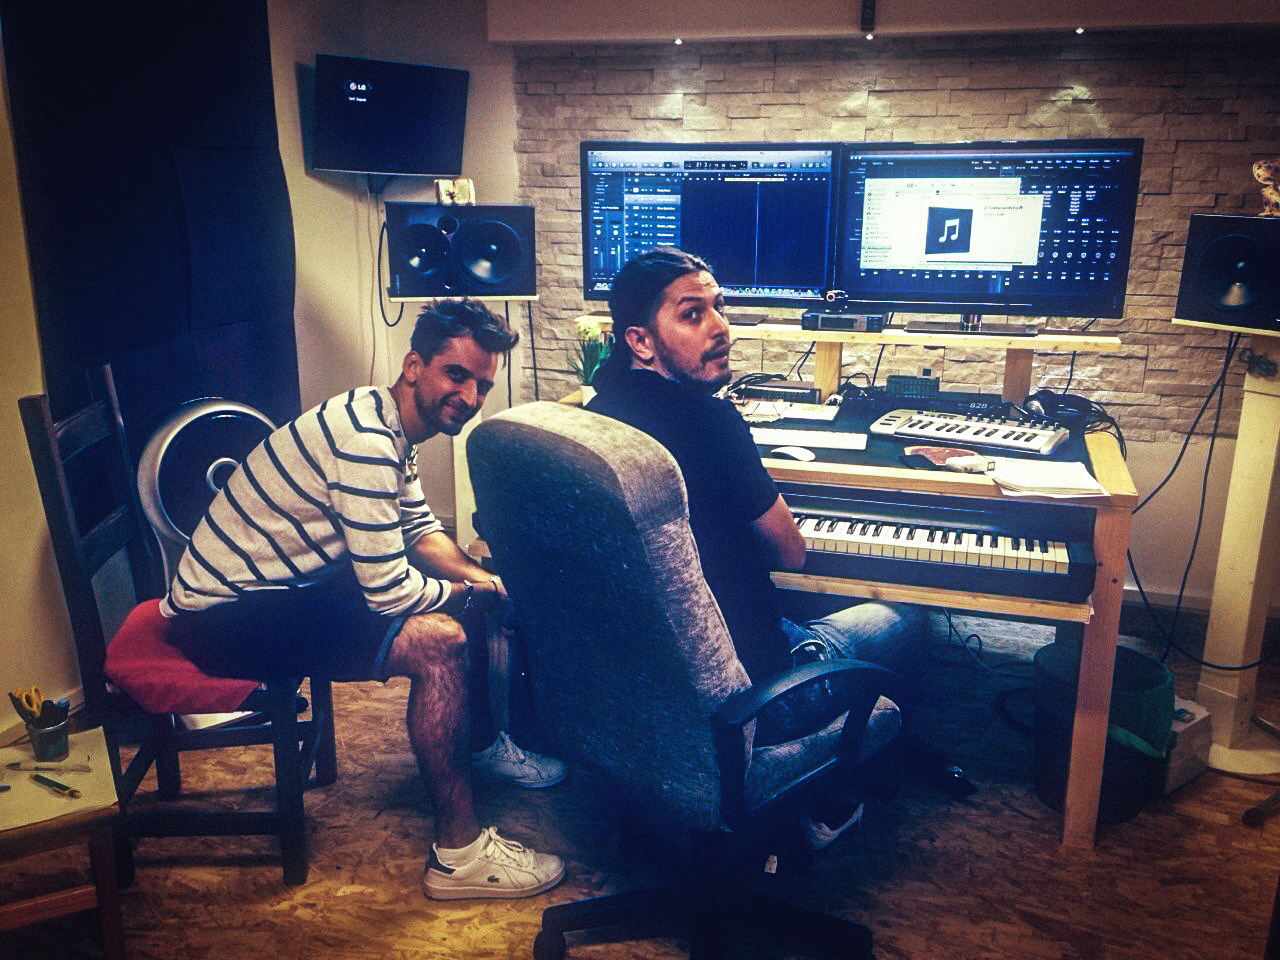 Alanas Marco Lo Russo Rouge recording studio 7 days